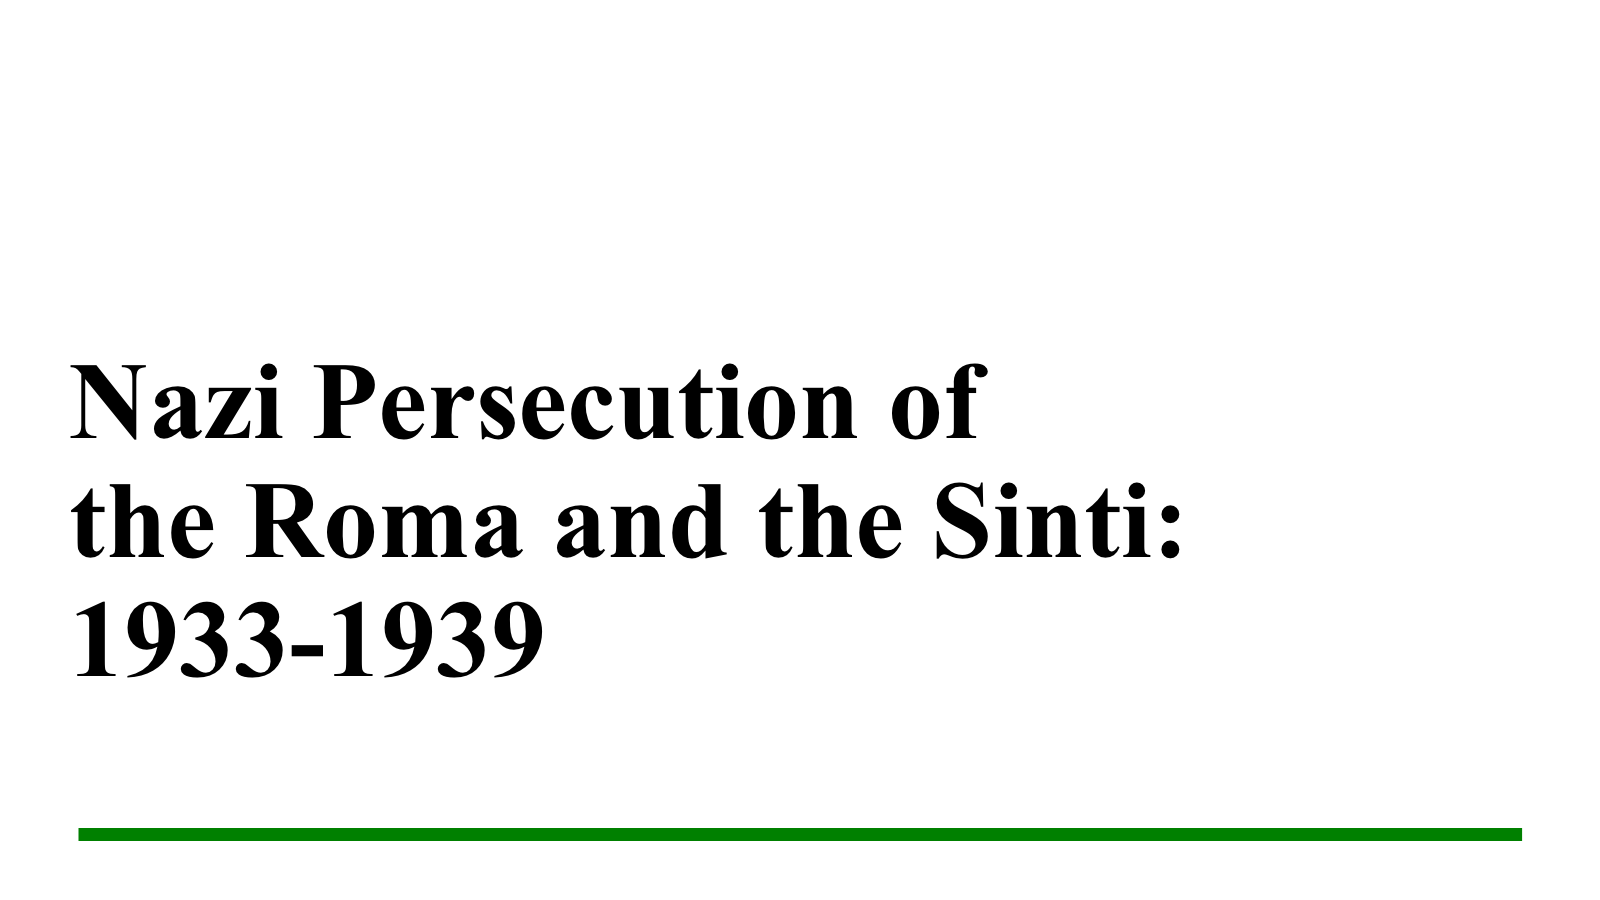 Nazi Persecution of the Roma and the Sinti